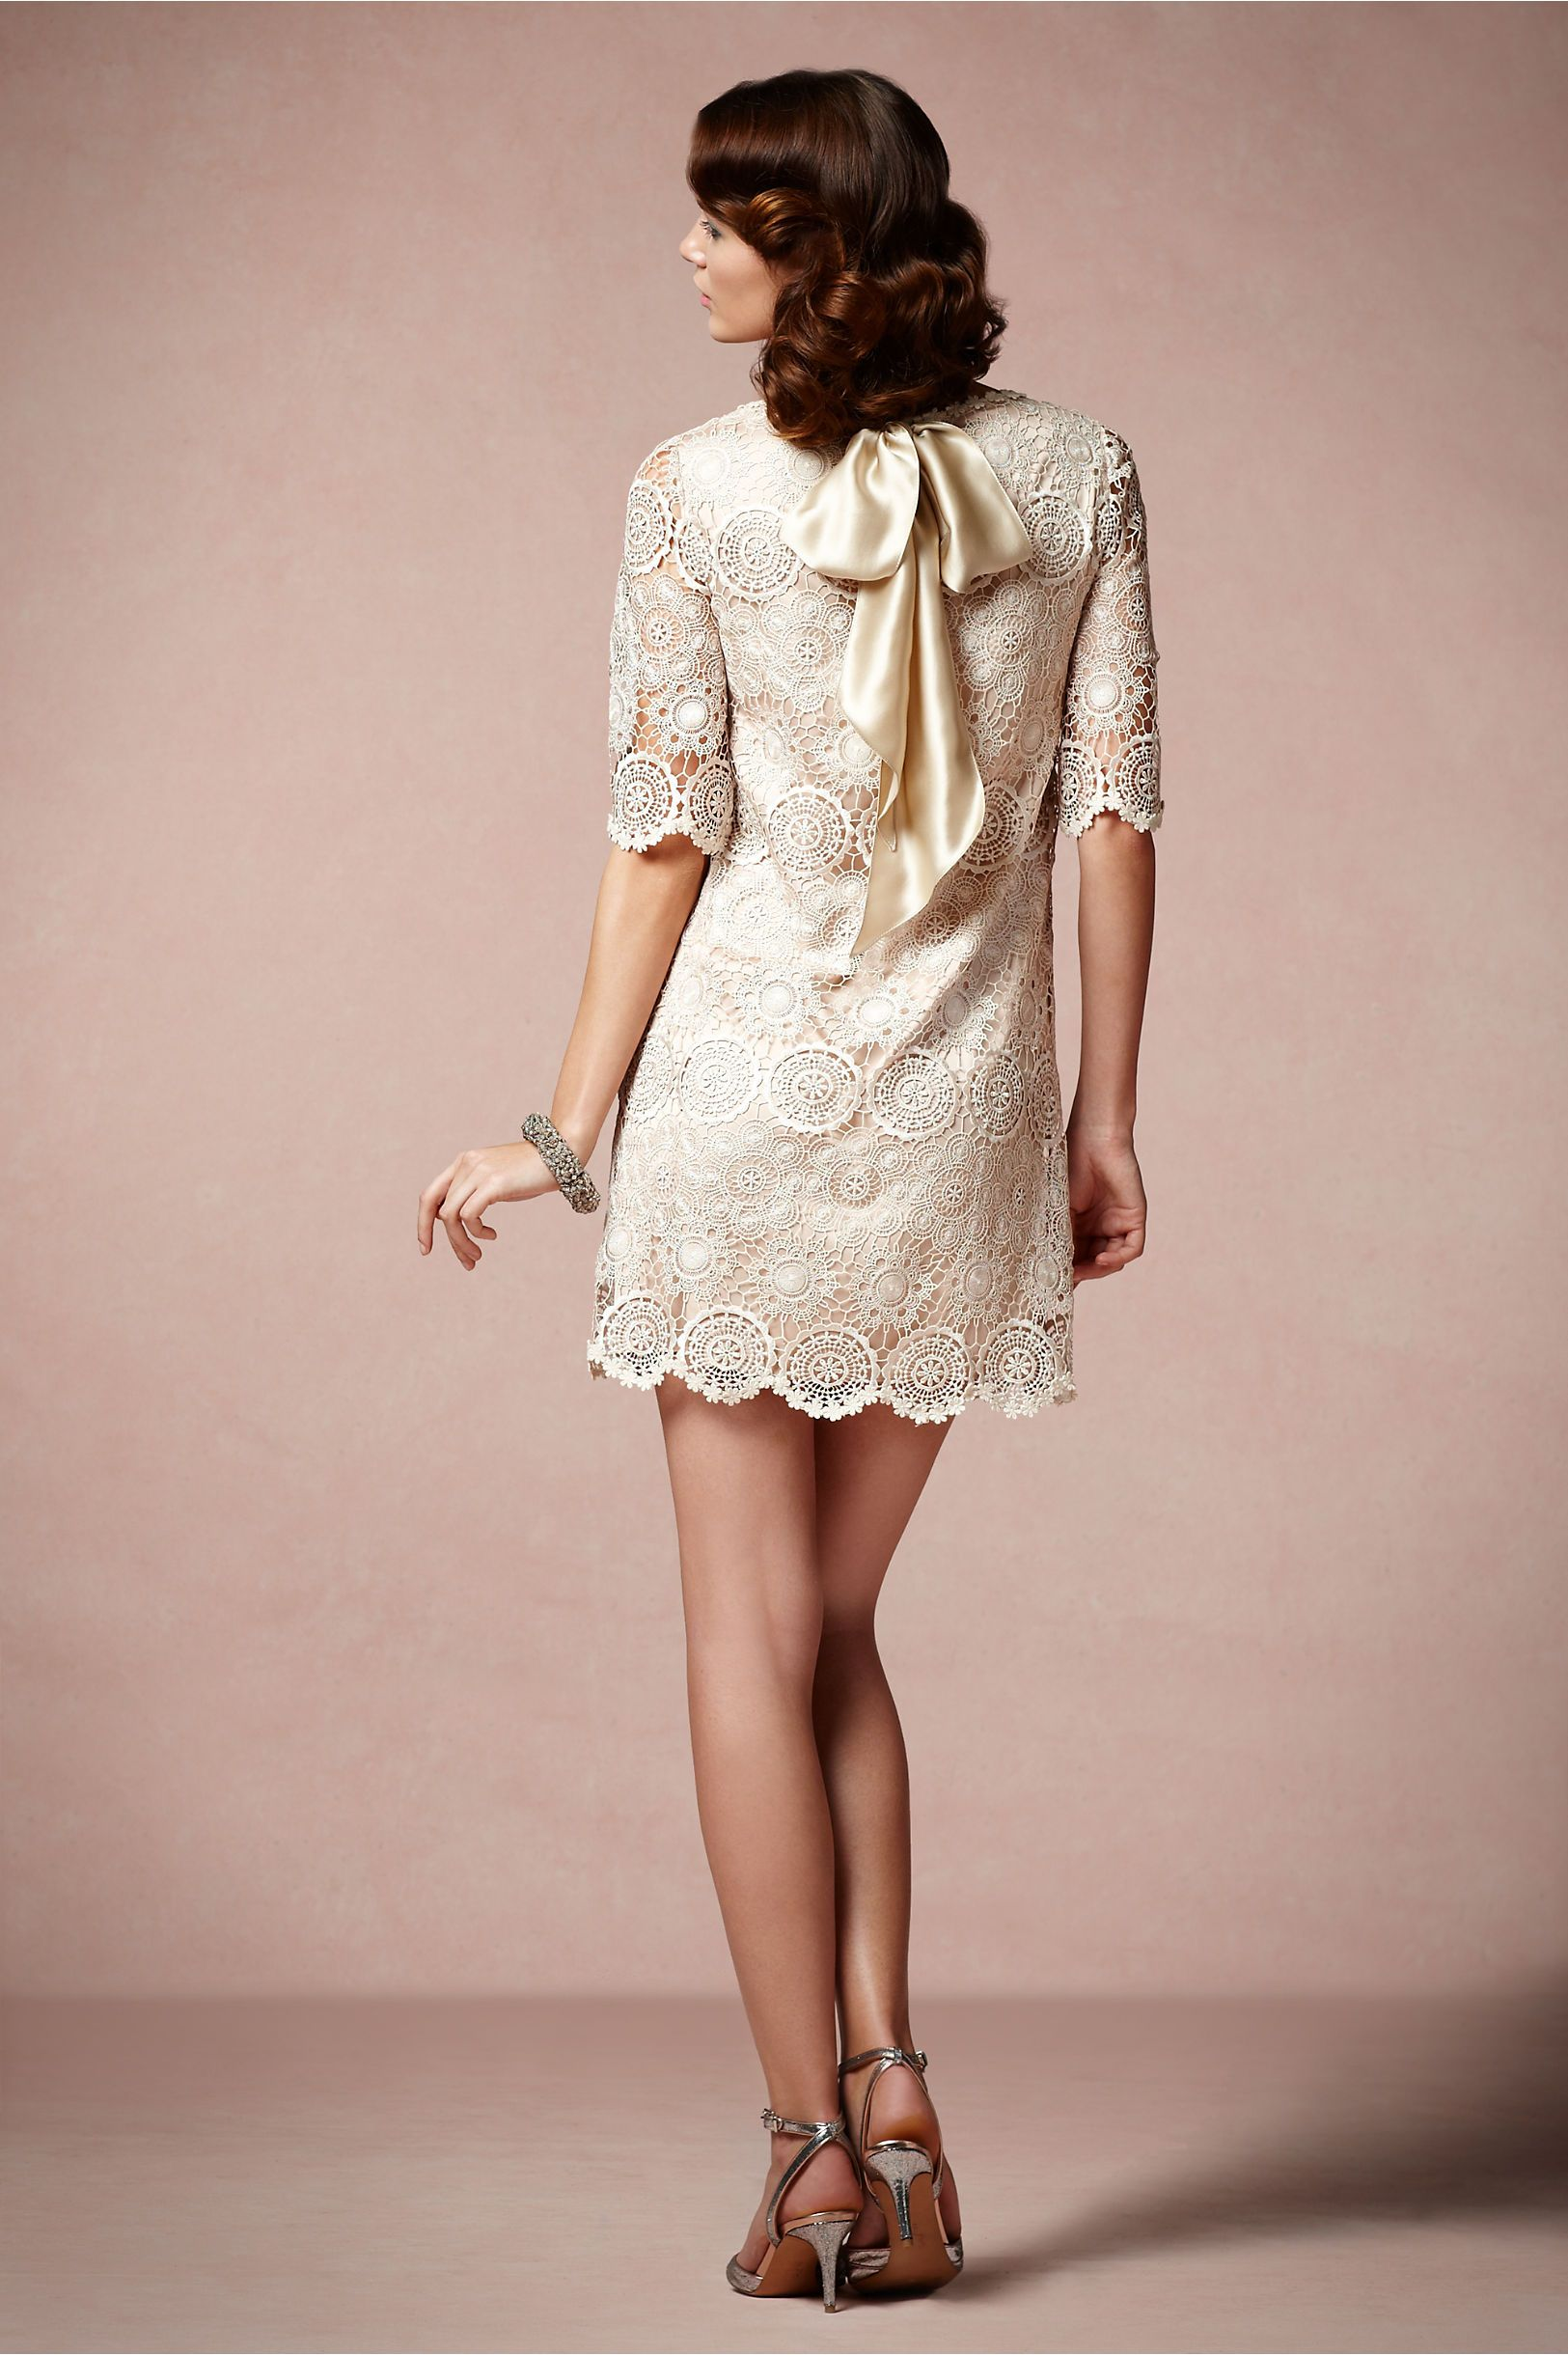 Champagne colored wedding dress  Agata Swing Dress from BHLDN love the lacelove the champagne